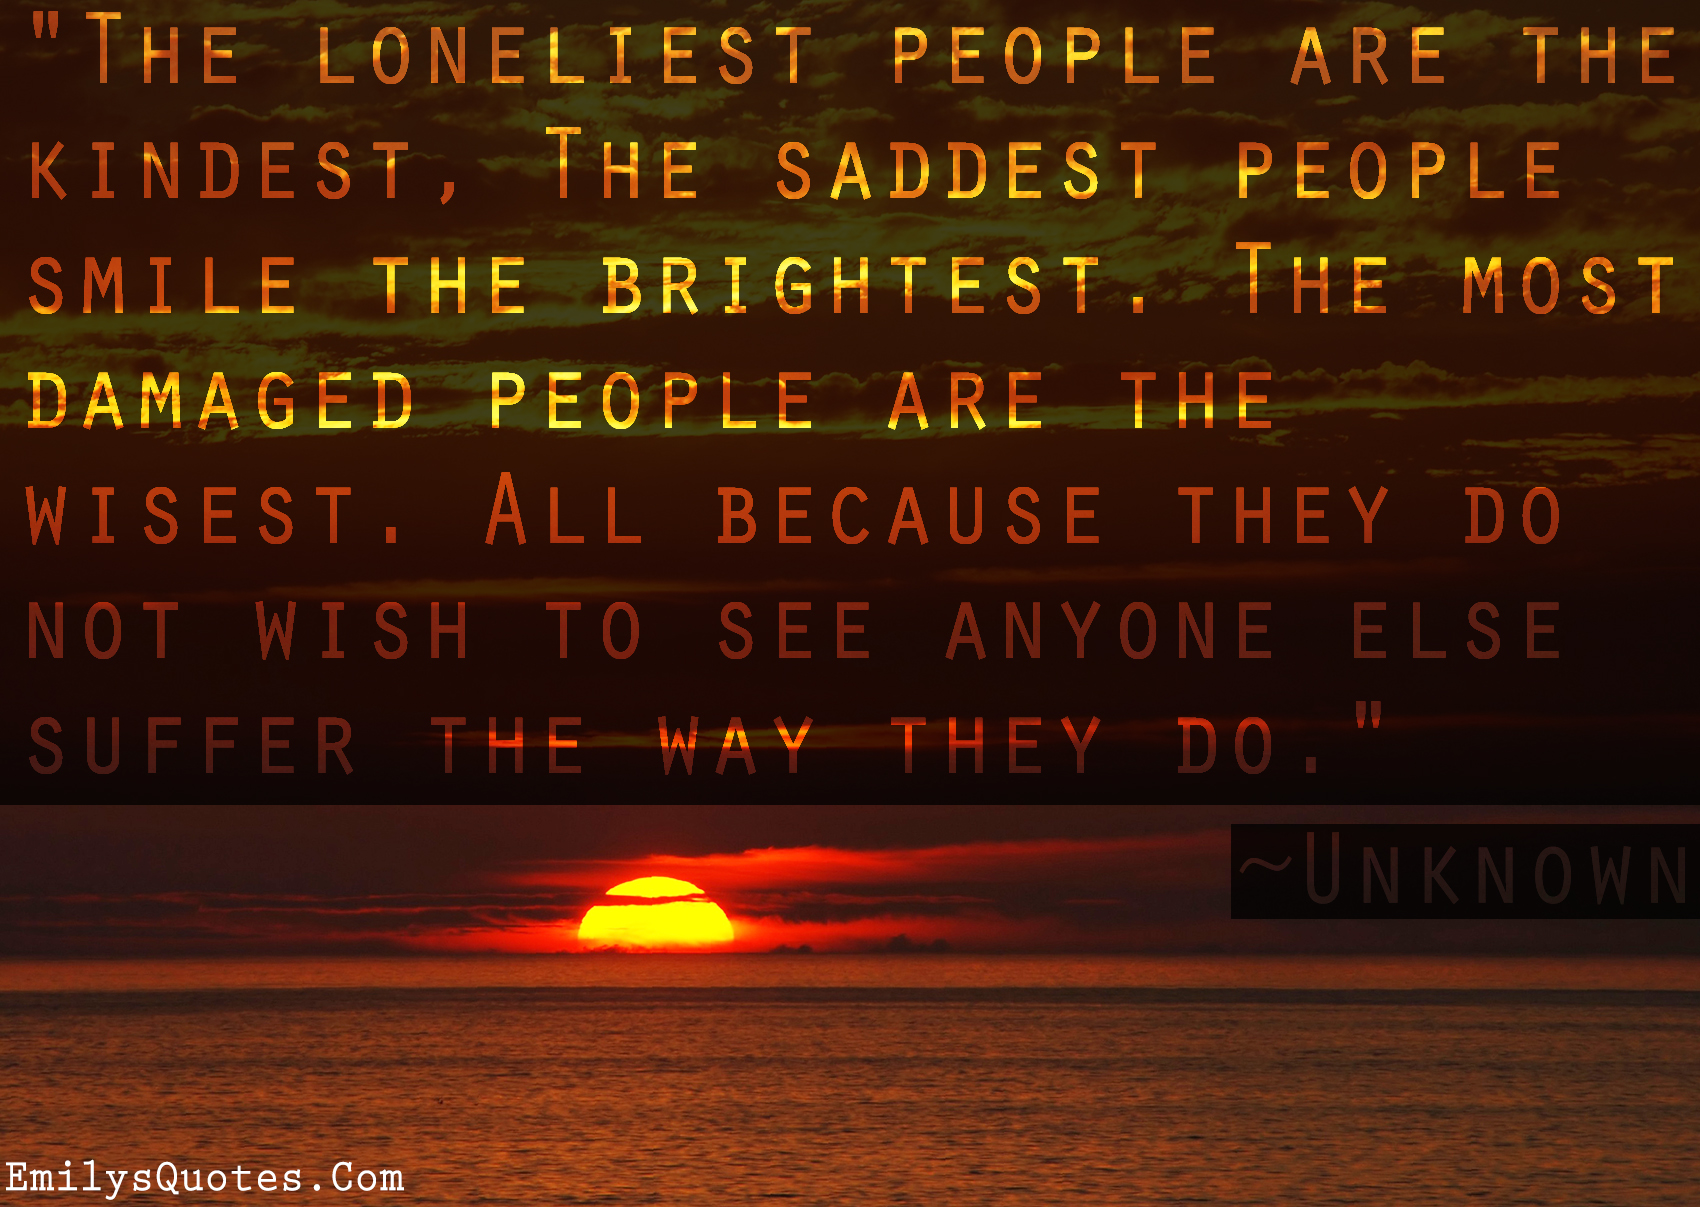 EmilysQuotes.Com - unknown, people, lonely, kind, sad, smile, wisdom, understanding, reason, suffer